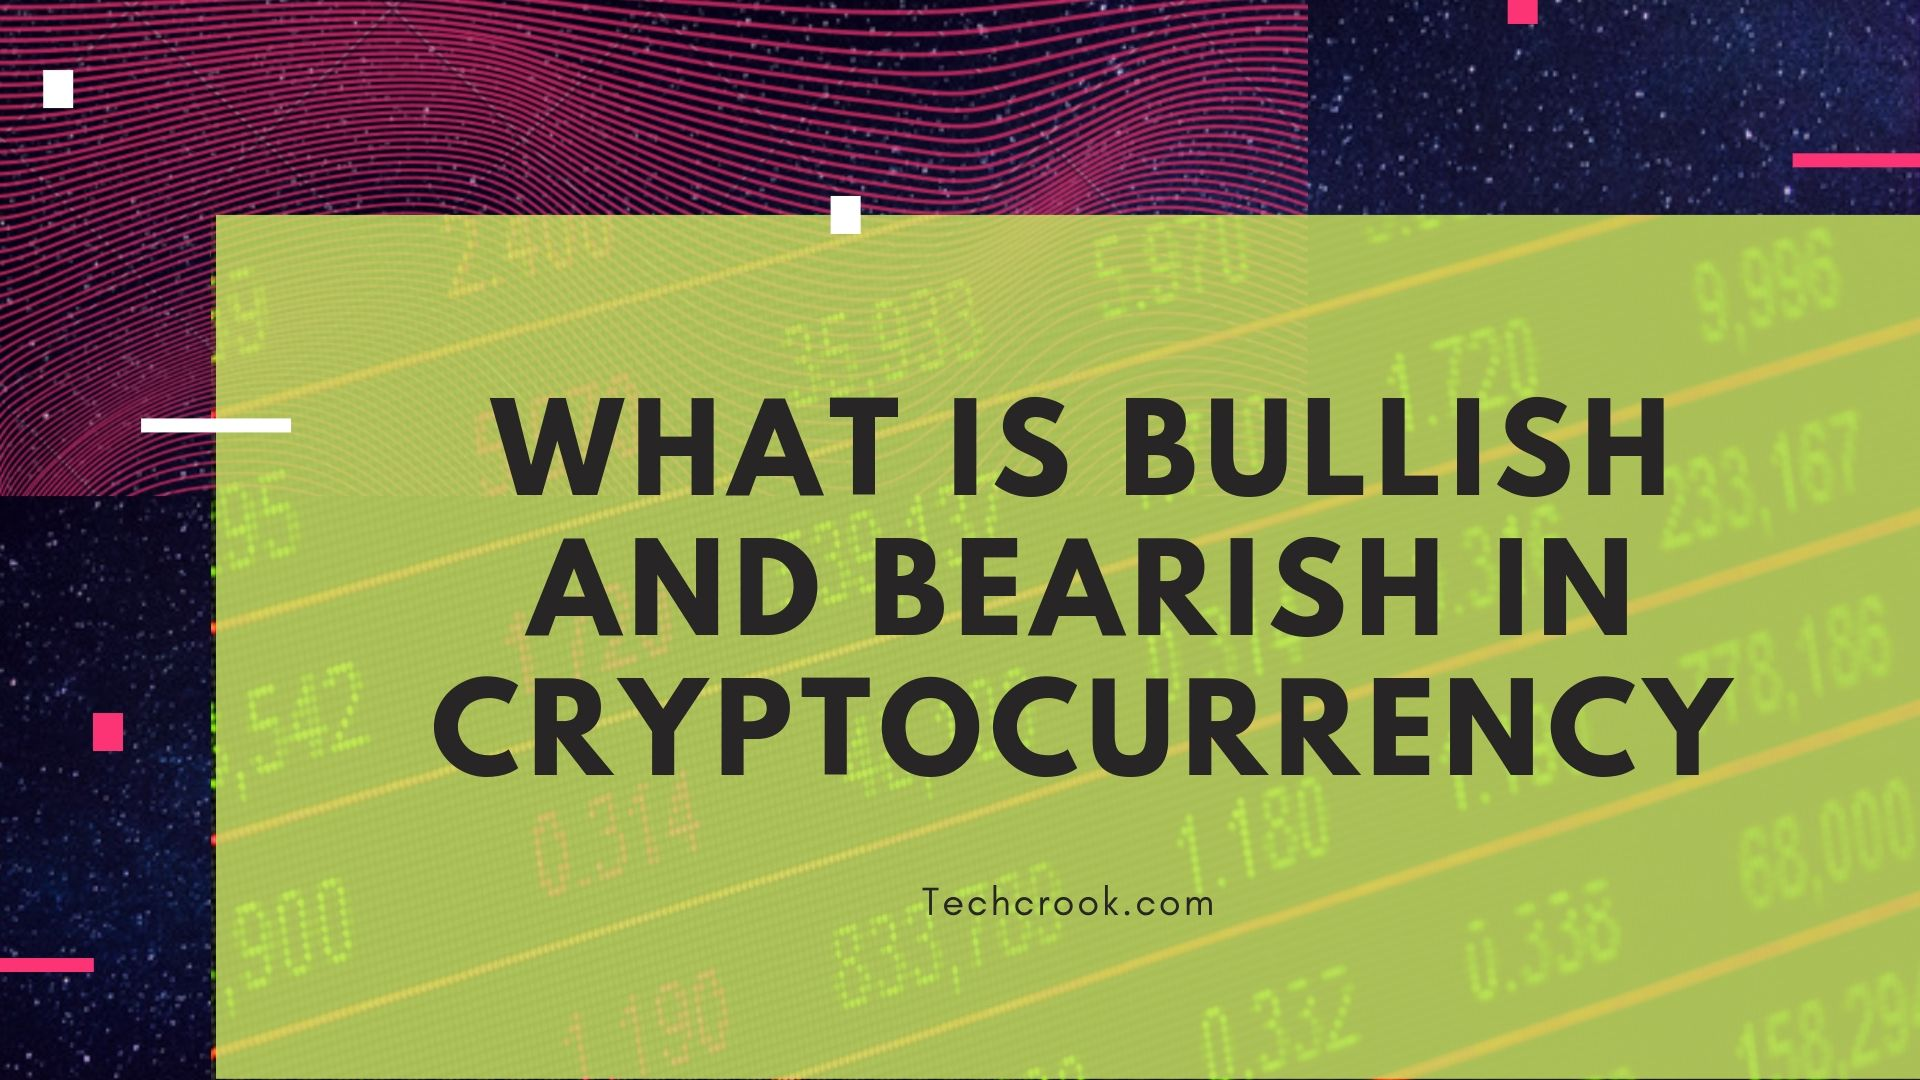 What is Bullish and Bearish mean in cryptocurrency